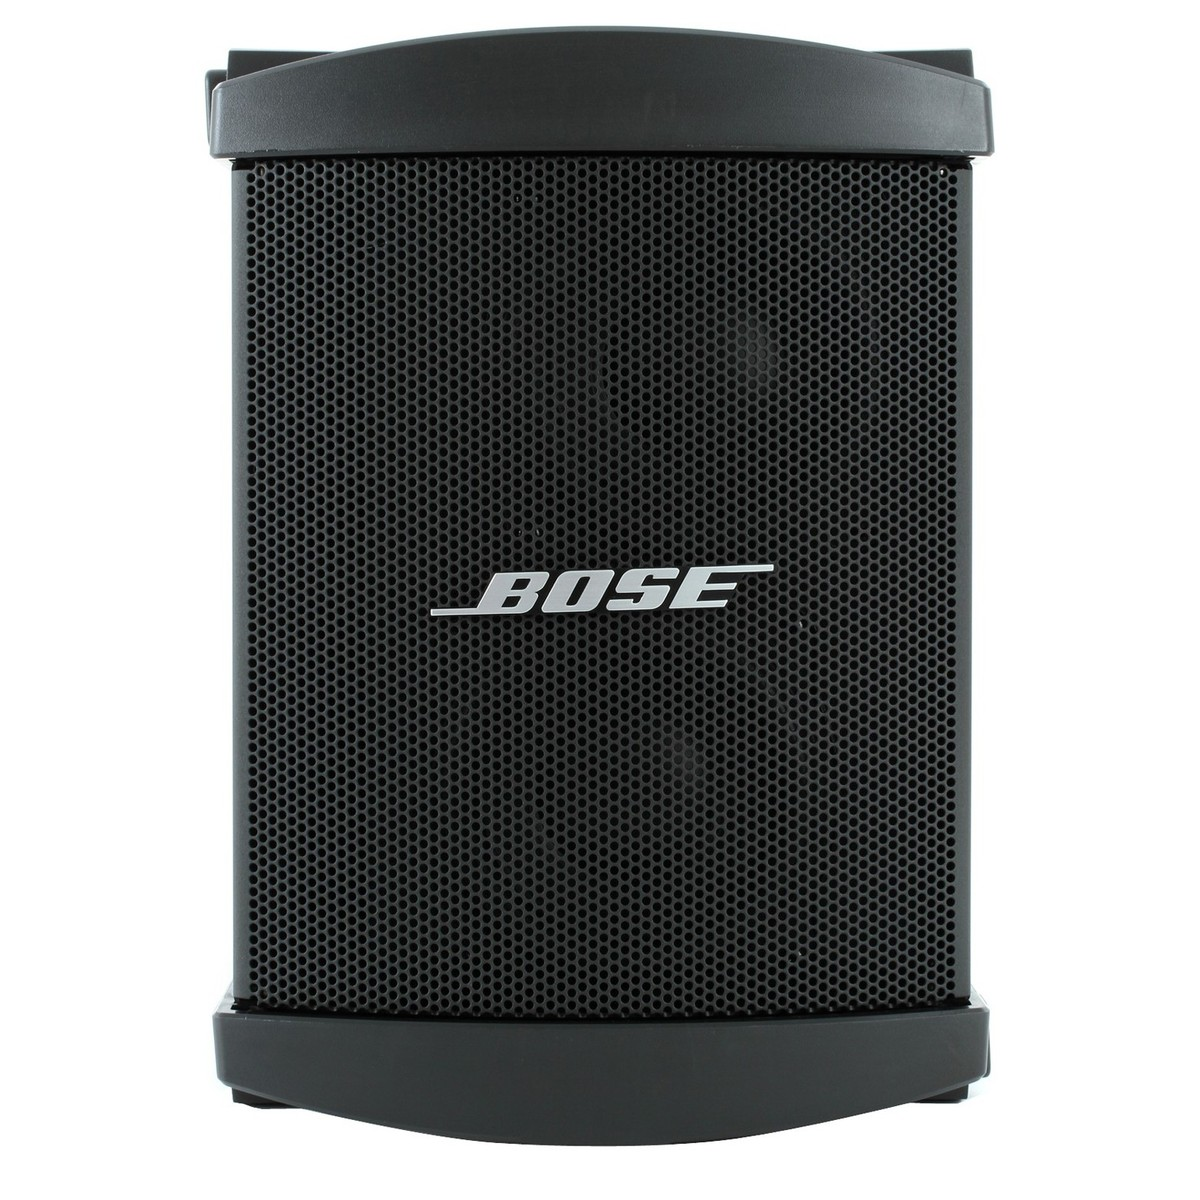 Bose L1 Model 1s System With B1 Bass Module And T1